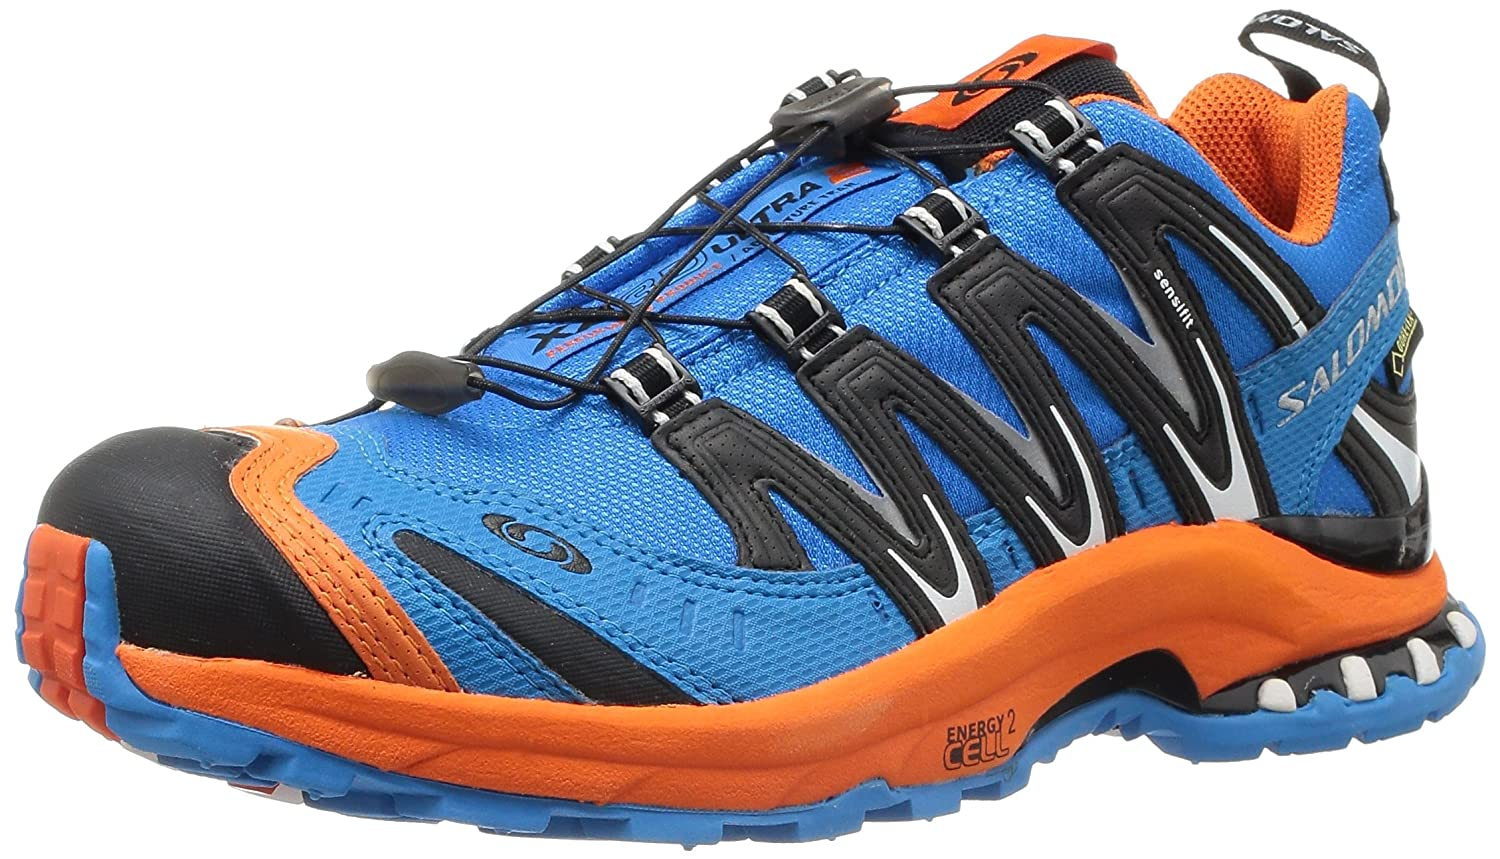 Salomon Men's Xa Pro 3D Ultra 2 GTX Running Shoes, OrangeBlackBlue, 7 UK